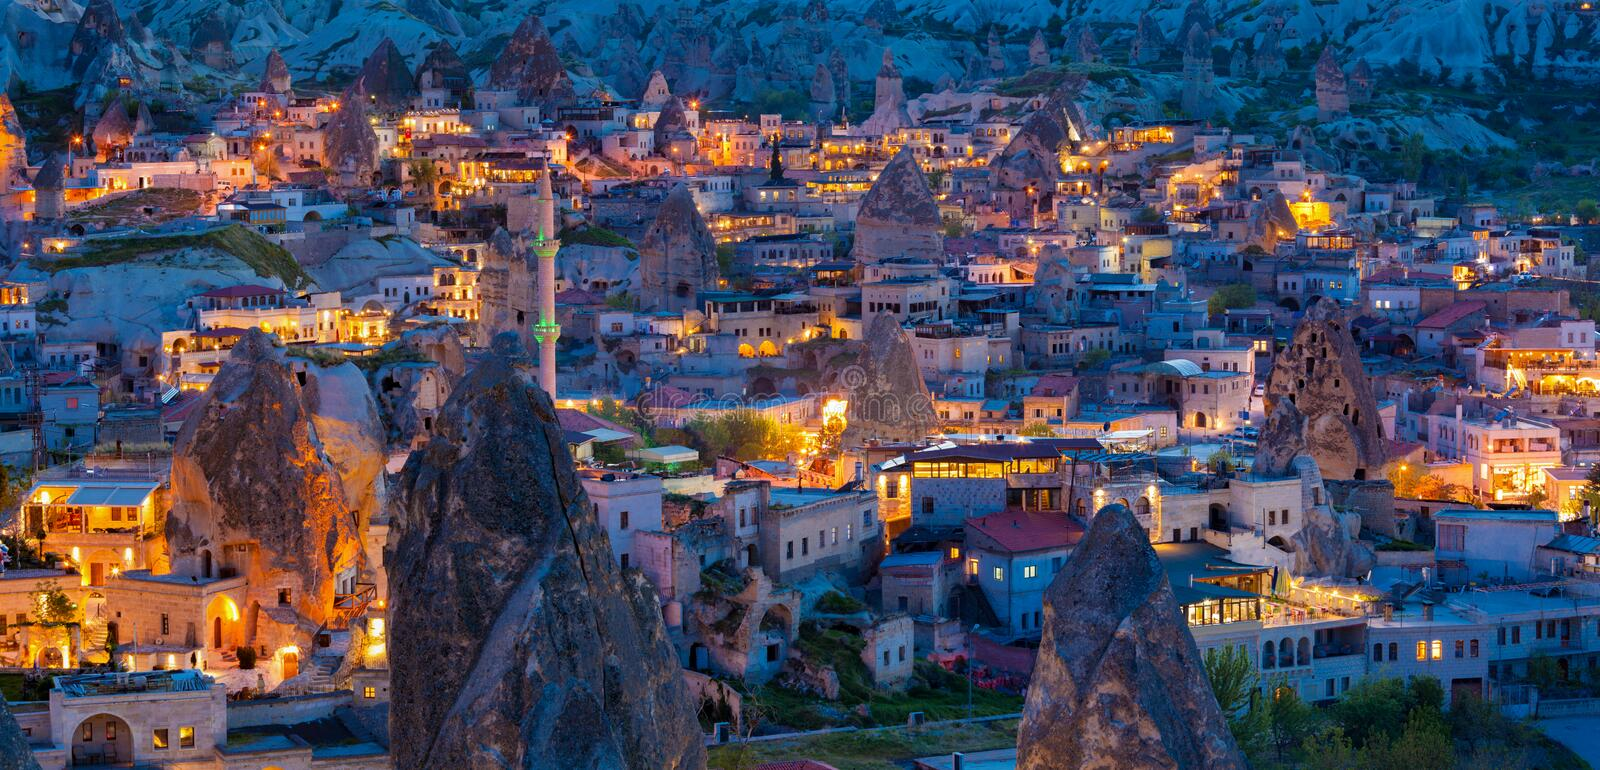 Night view of Goreme, Cappadocia, Turkey. Night view of Goreme town in Nevsehir Province, Central Anatolia located among amazing rock formations in Cappadocia stock photo